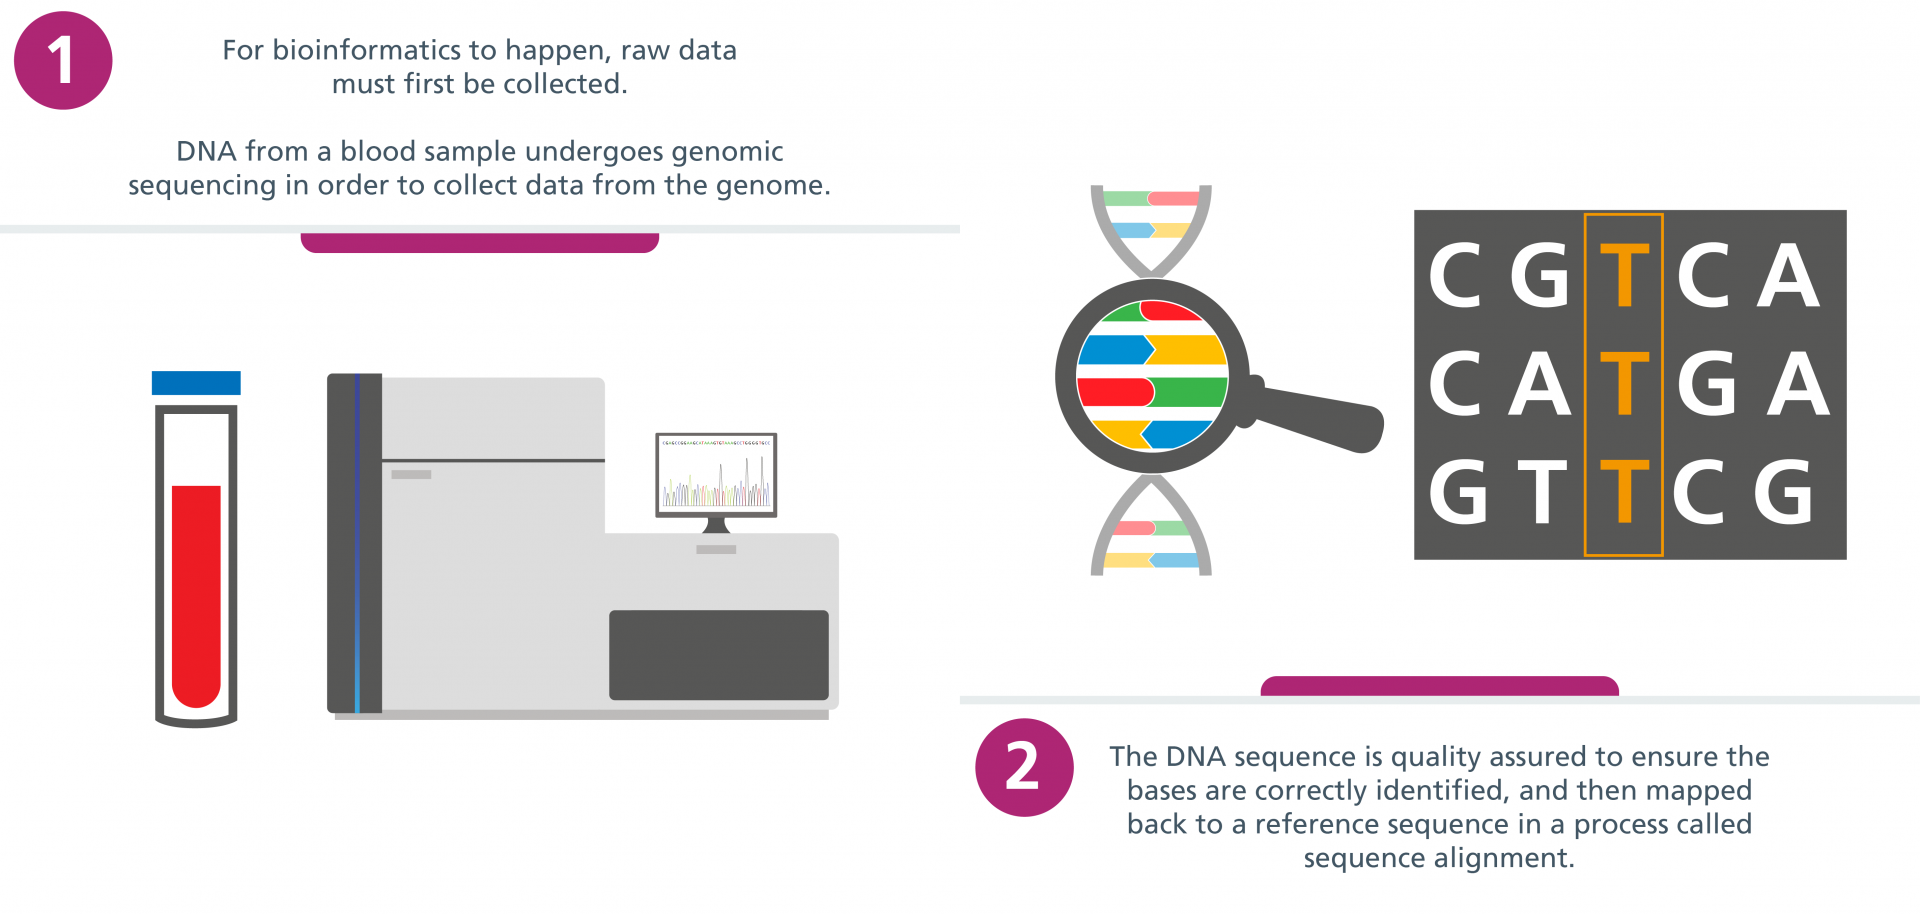 Step 1: For bioinformatics to happen, raw data must first be collected. DNA from a blood sample undergoes genomic sequencing in order to collect data from the genome. Step 2: The DNA sequence is quality assured to ensure the bases are correctly identified, and then mapped back to a reference sequence in a process called sequence alignment.